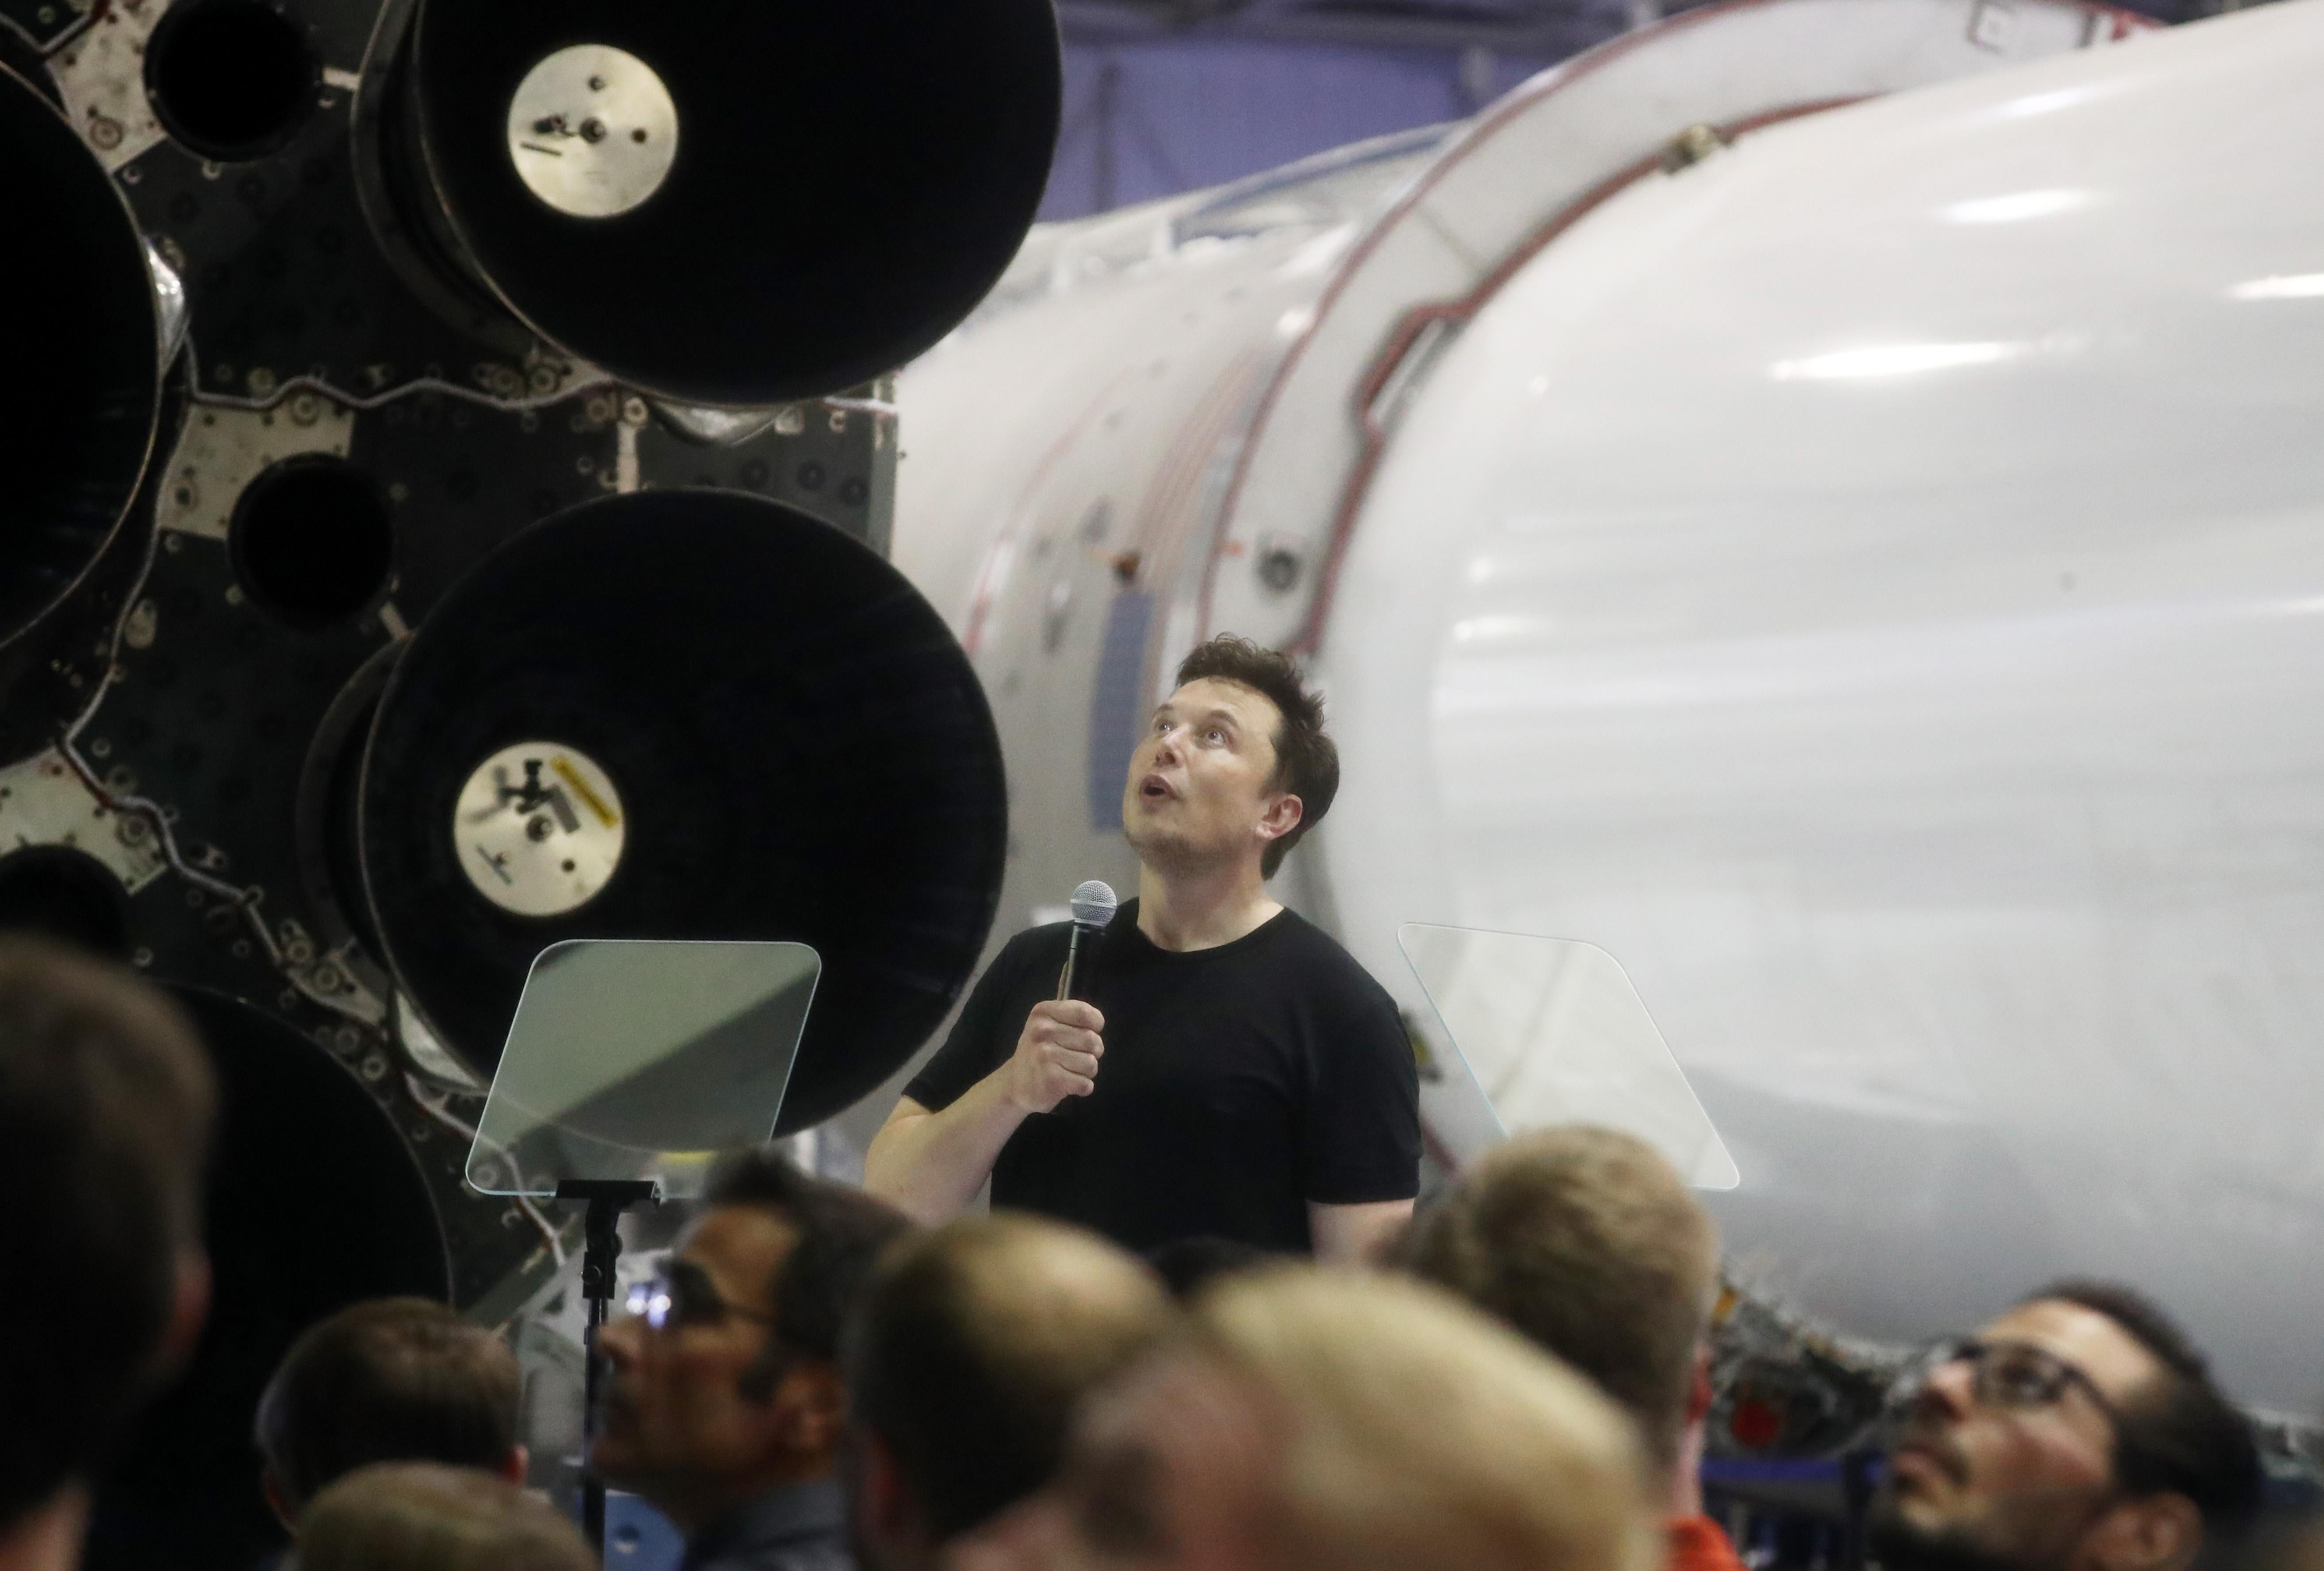 Elon Musk speaking at the headquarters of SpaceX, his rocket company